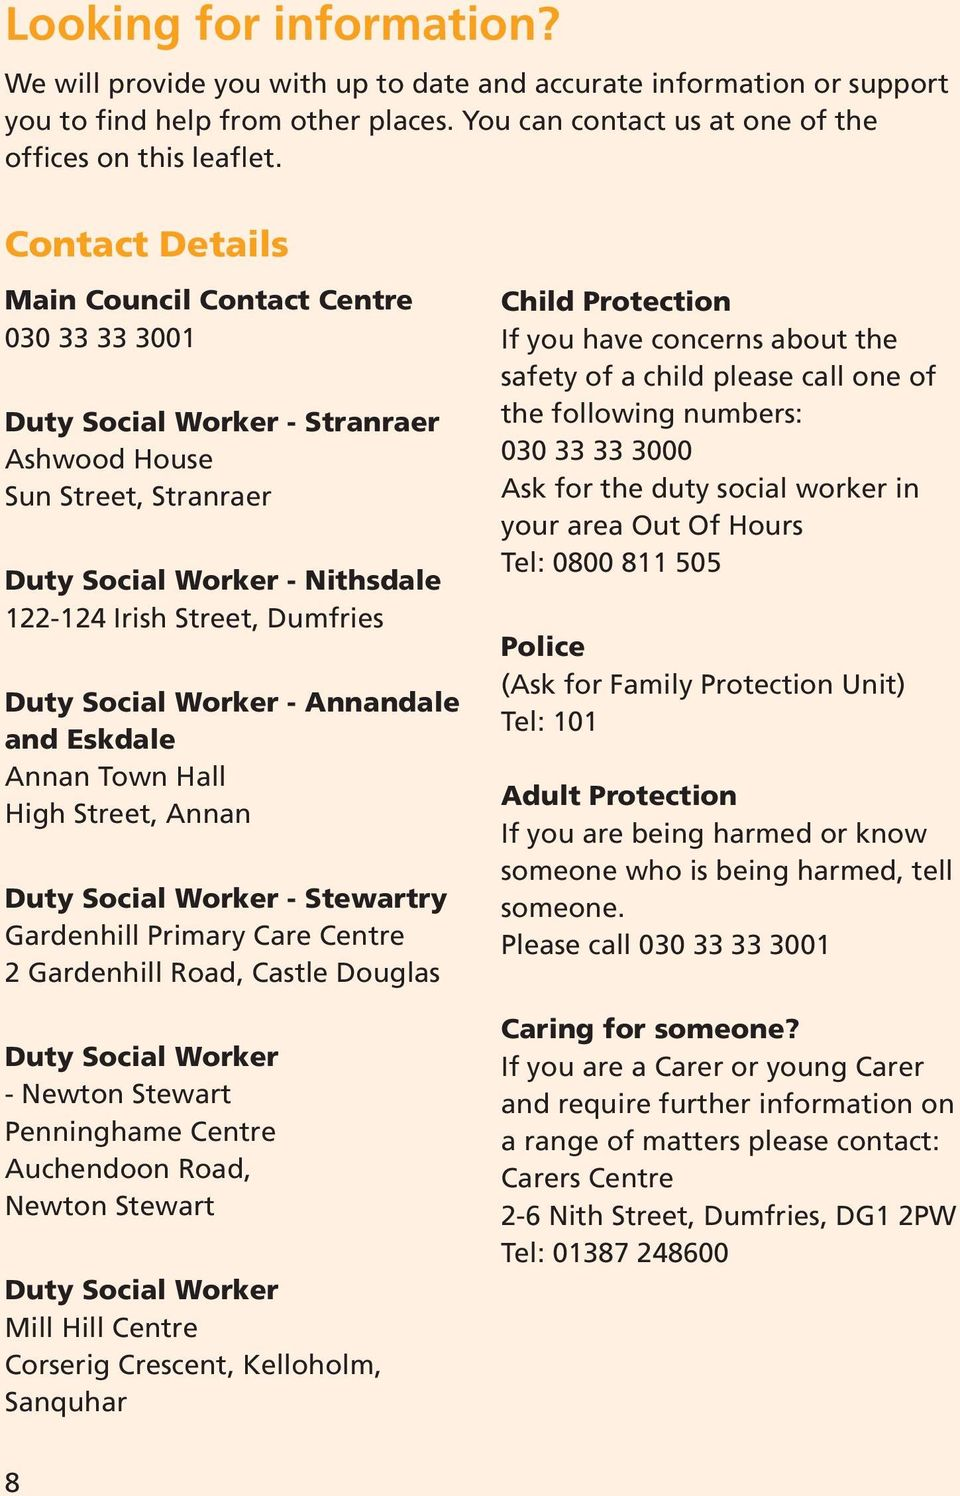 Worker - Annandale and Eskdale Annan Town Hall High Street, Annan Duty Social Worker - Stewartry Gardenhill Primary Care Centre 2 Gardenhill Road, Castle Douglas Duty Social Worker - Newton Stewart